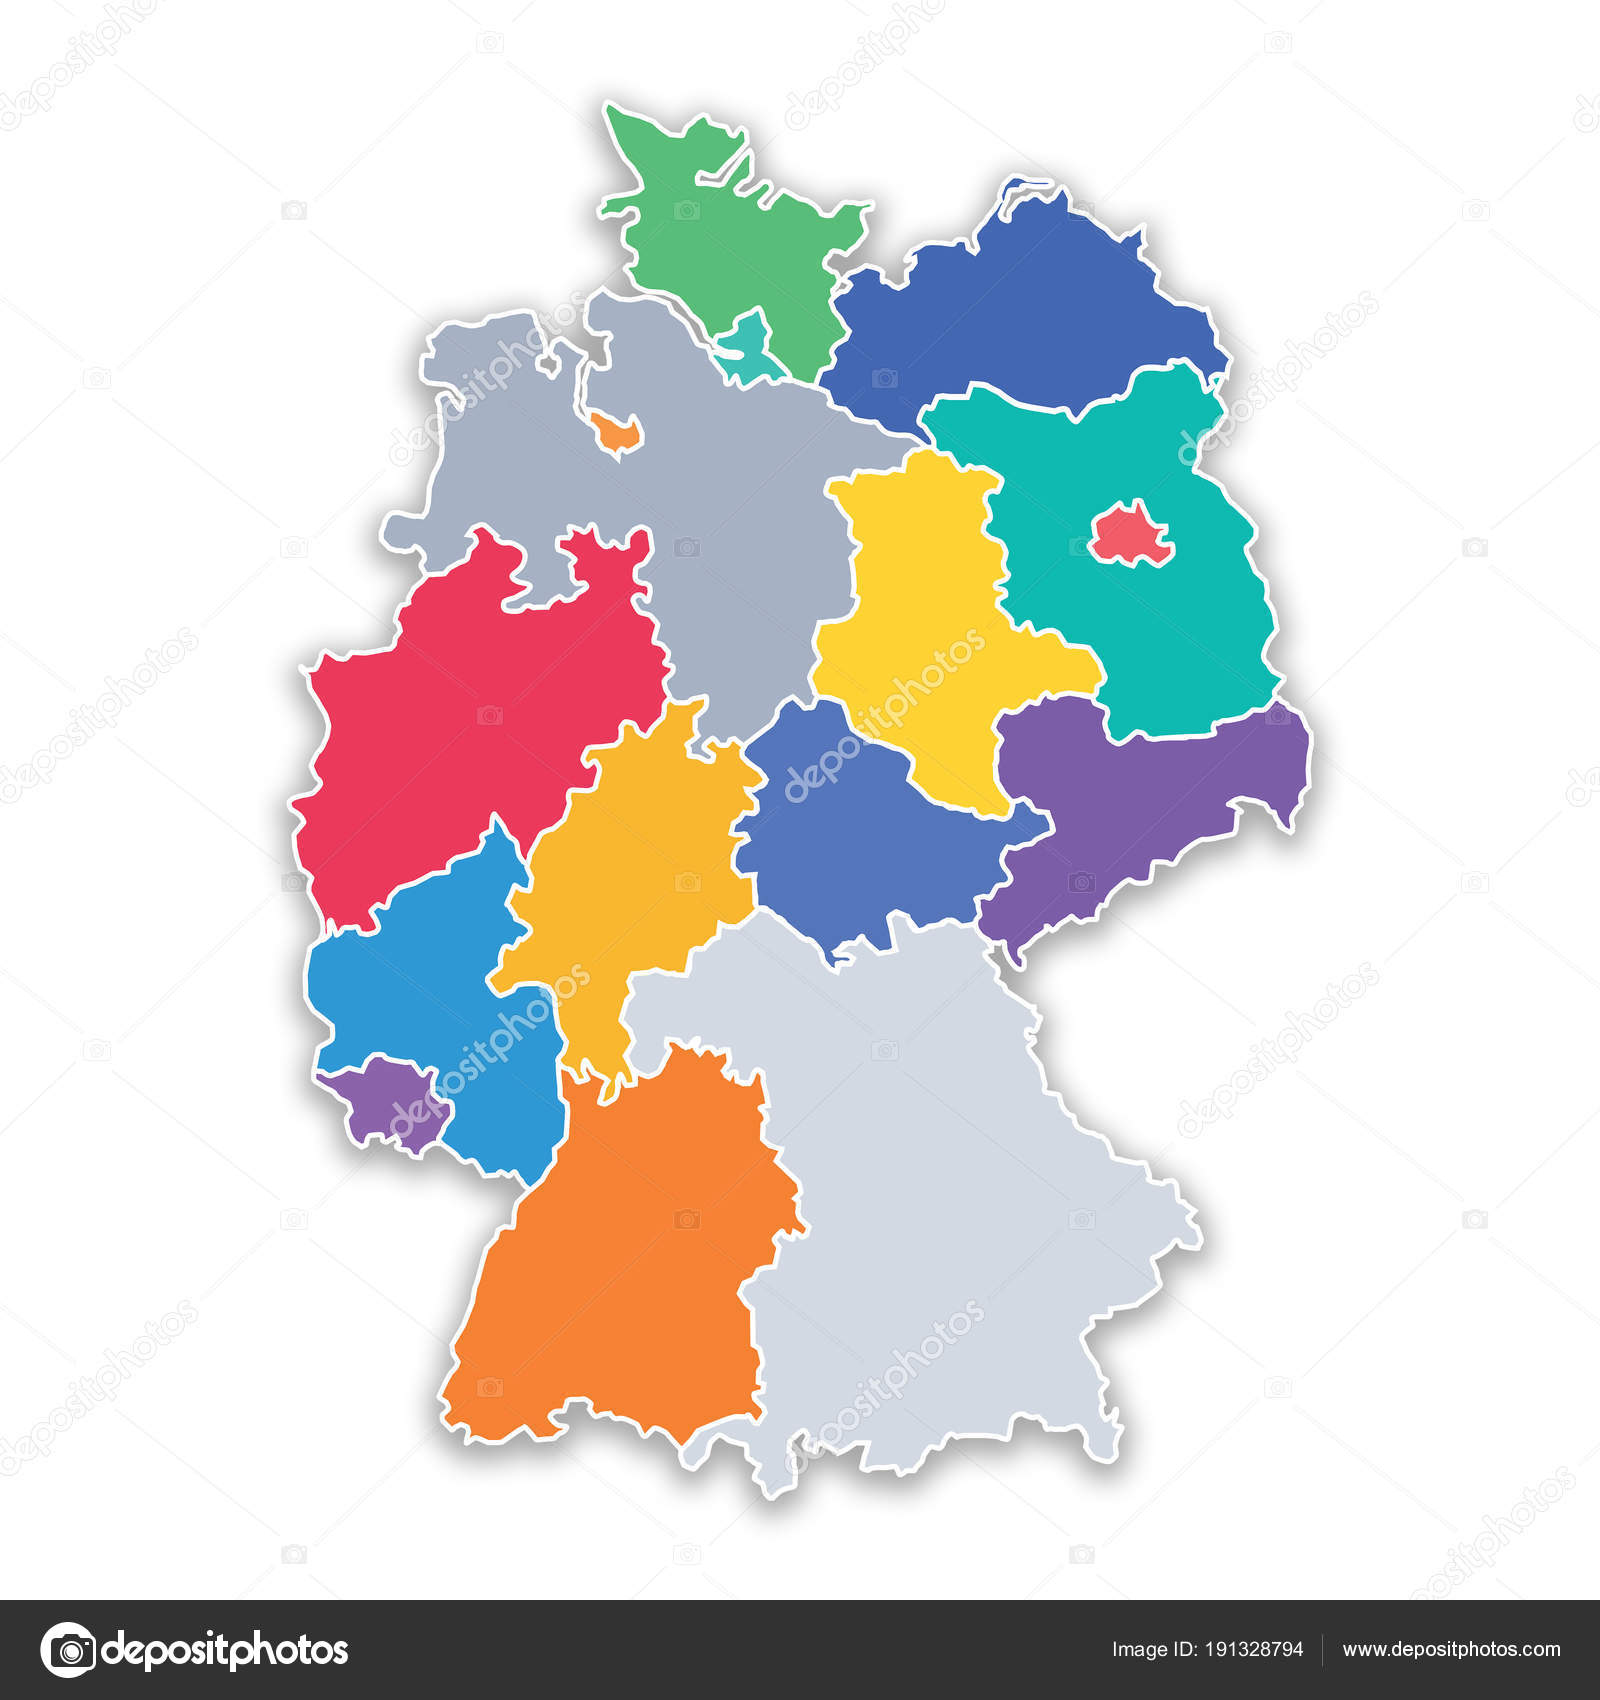 Map Of States Of Germany.Map Of States Of Germany In Flat Colors Stock Photo C Mipimages